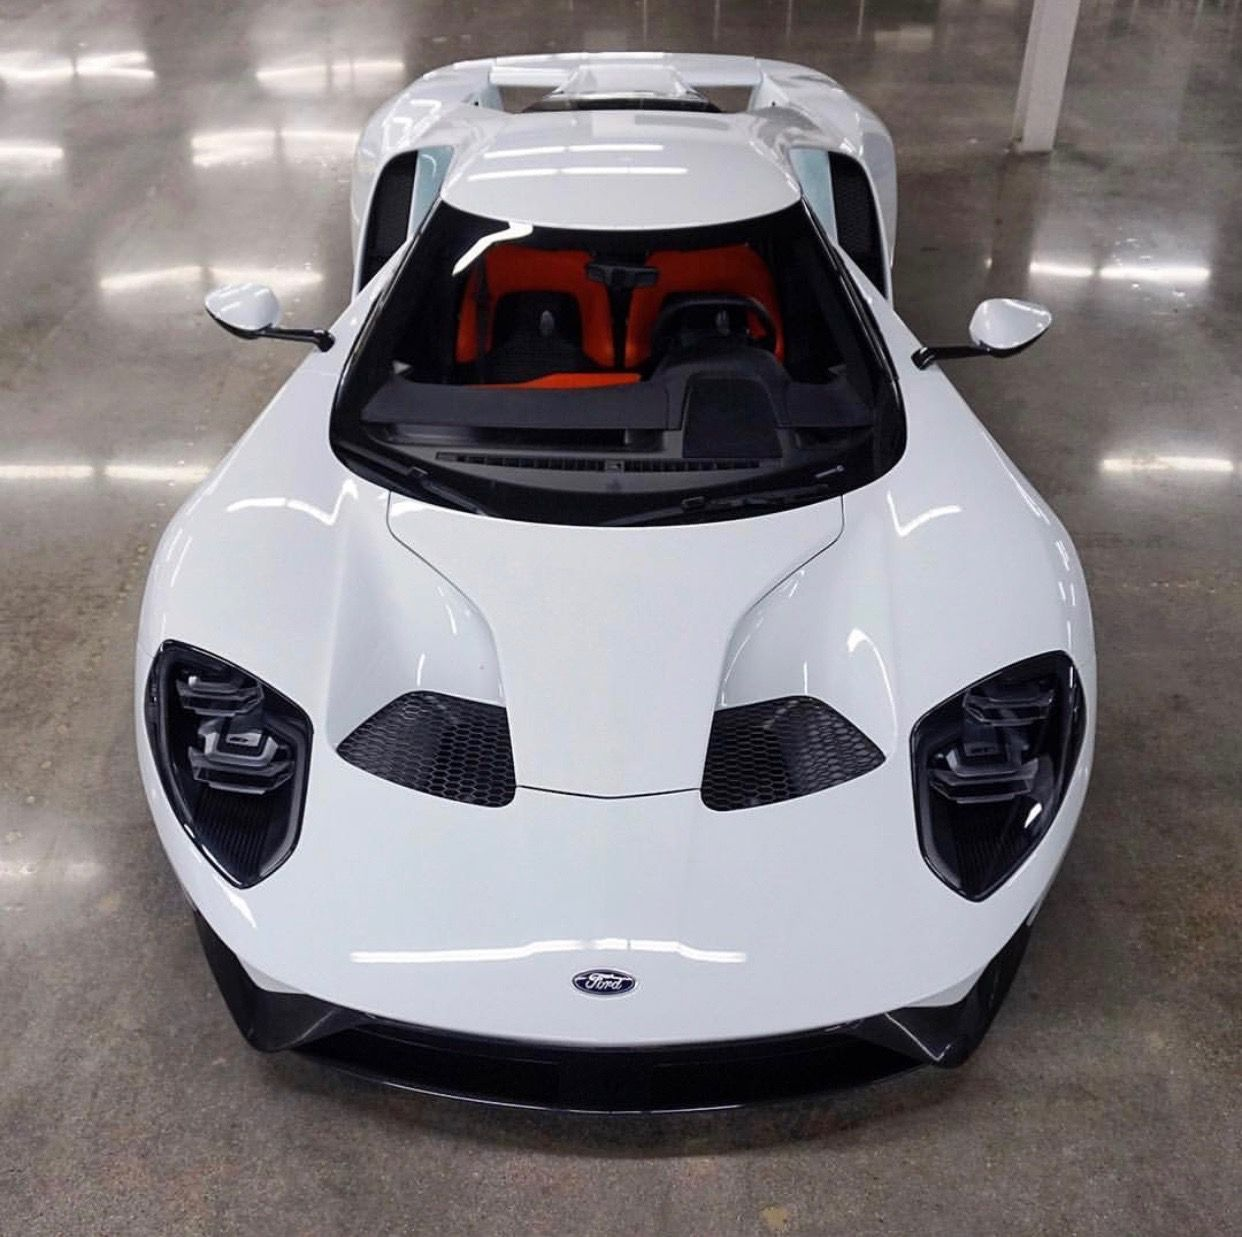 Ford Gt Painted In White Photo Taken By Fordgtforum On Instagram